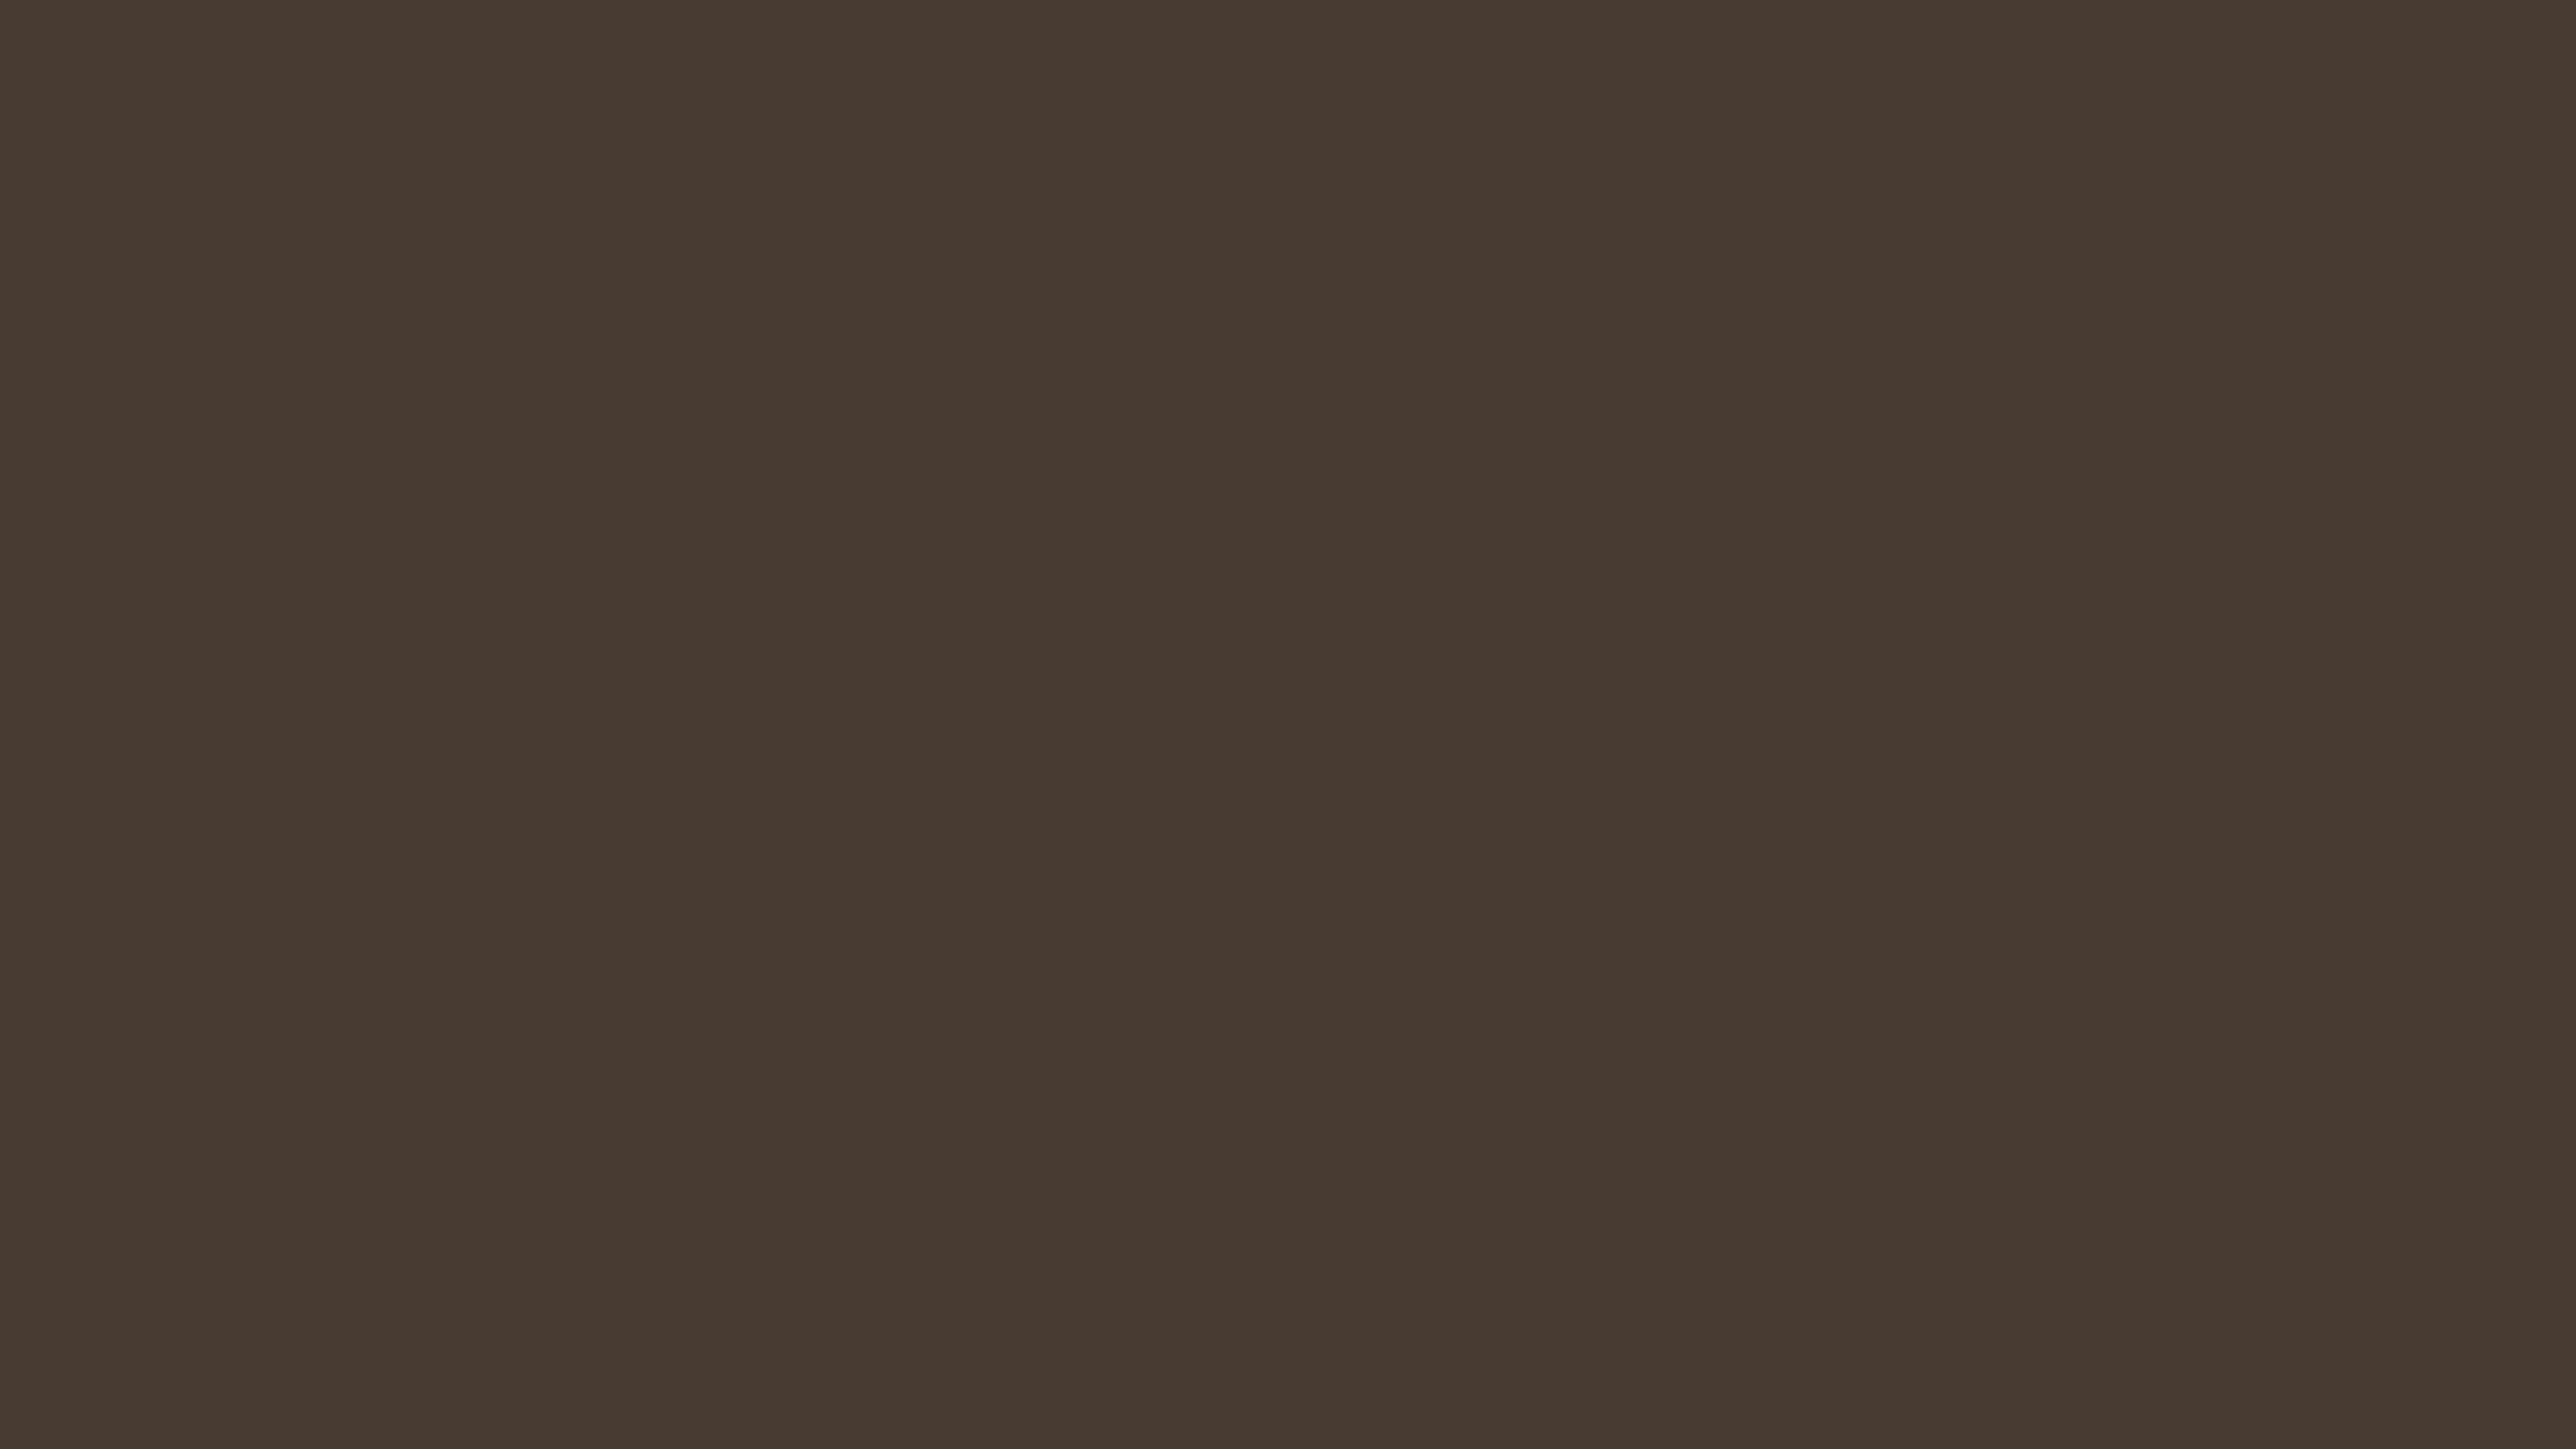 4096x2304 Dark Taupe Solid Color Background